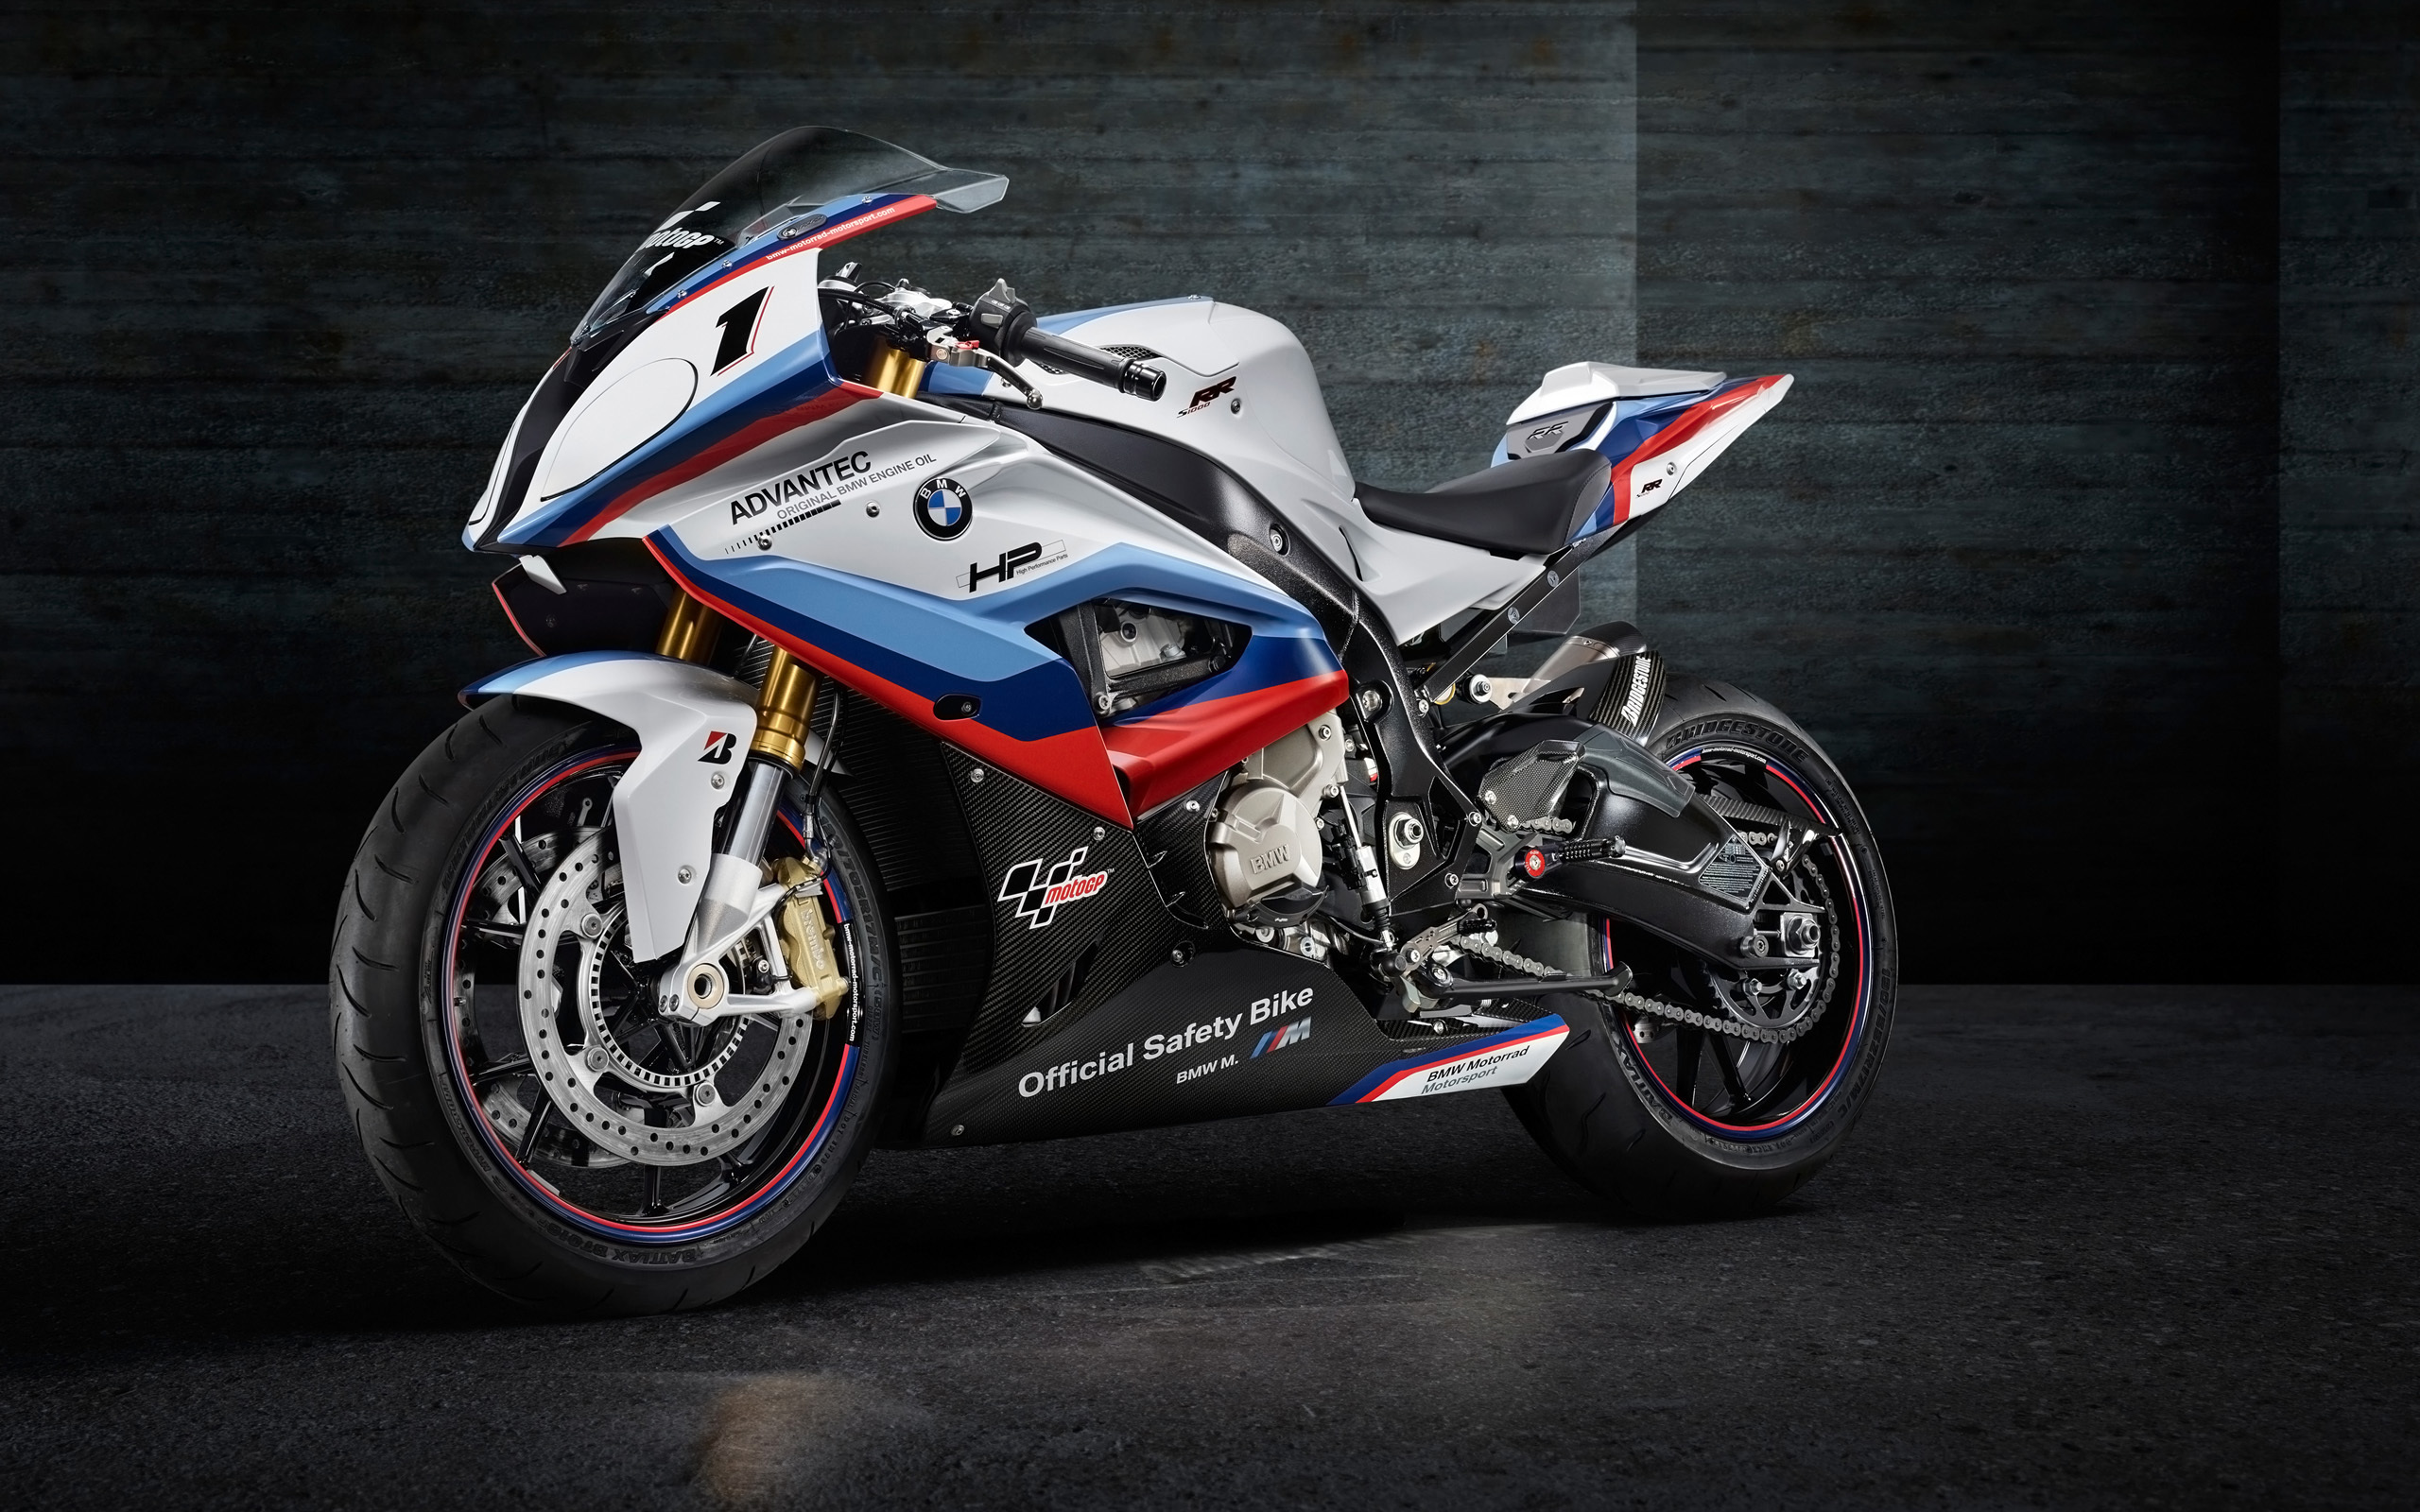 Bmw Wallpaper Hd 2560x1440 1 Bmw S1000rr Motogp Safety Bike Fonds D 233 Cran Hd